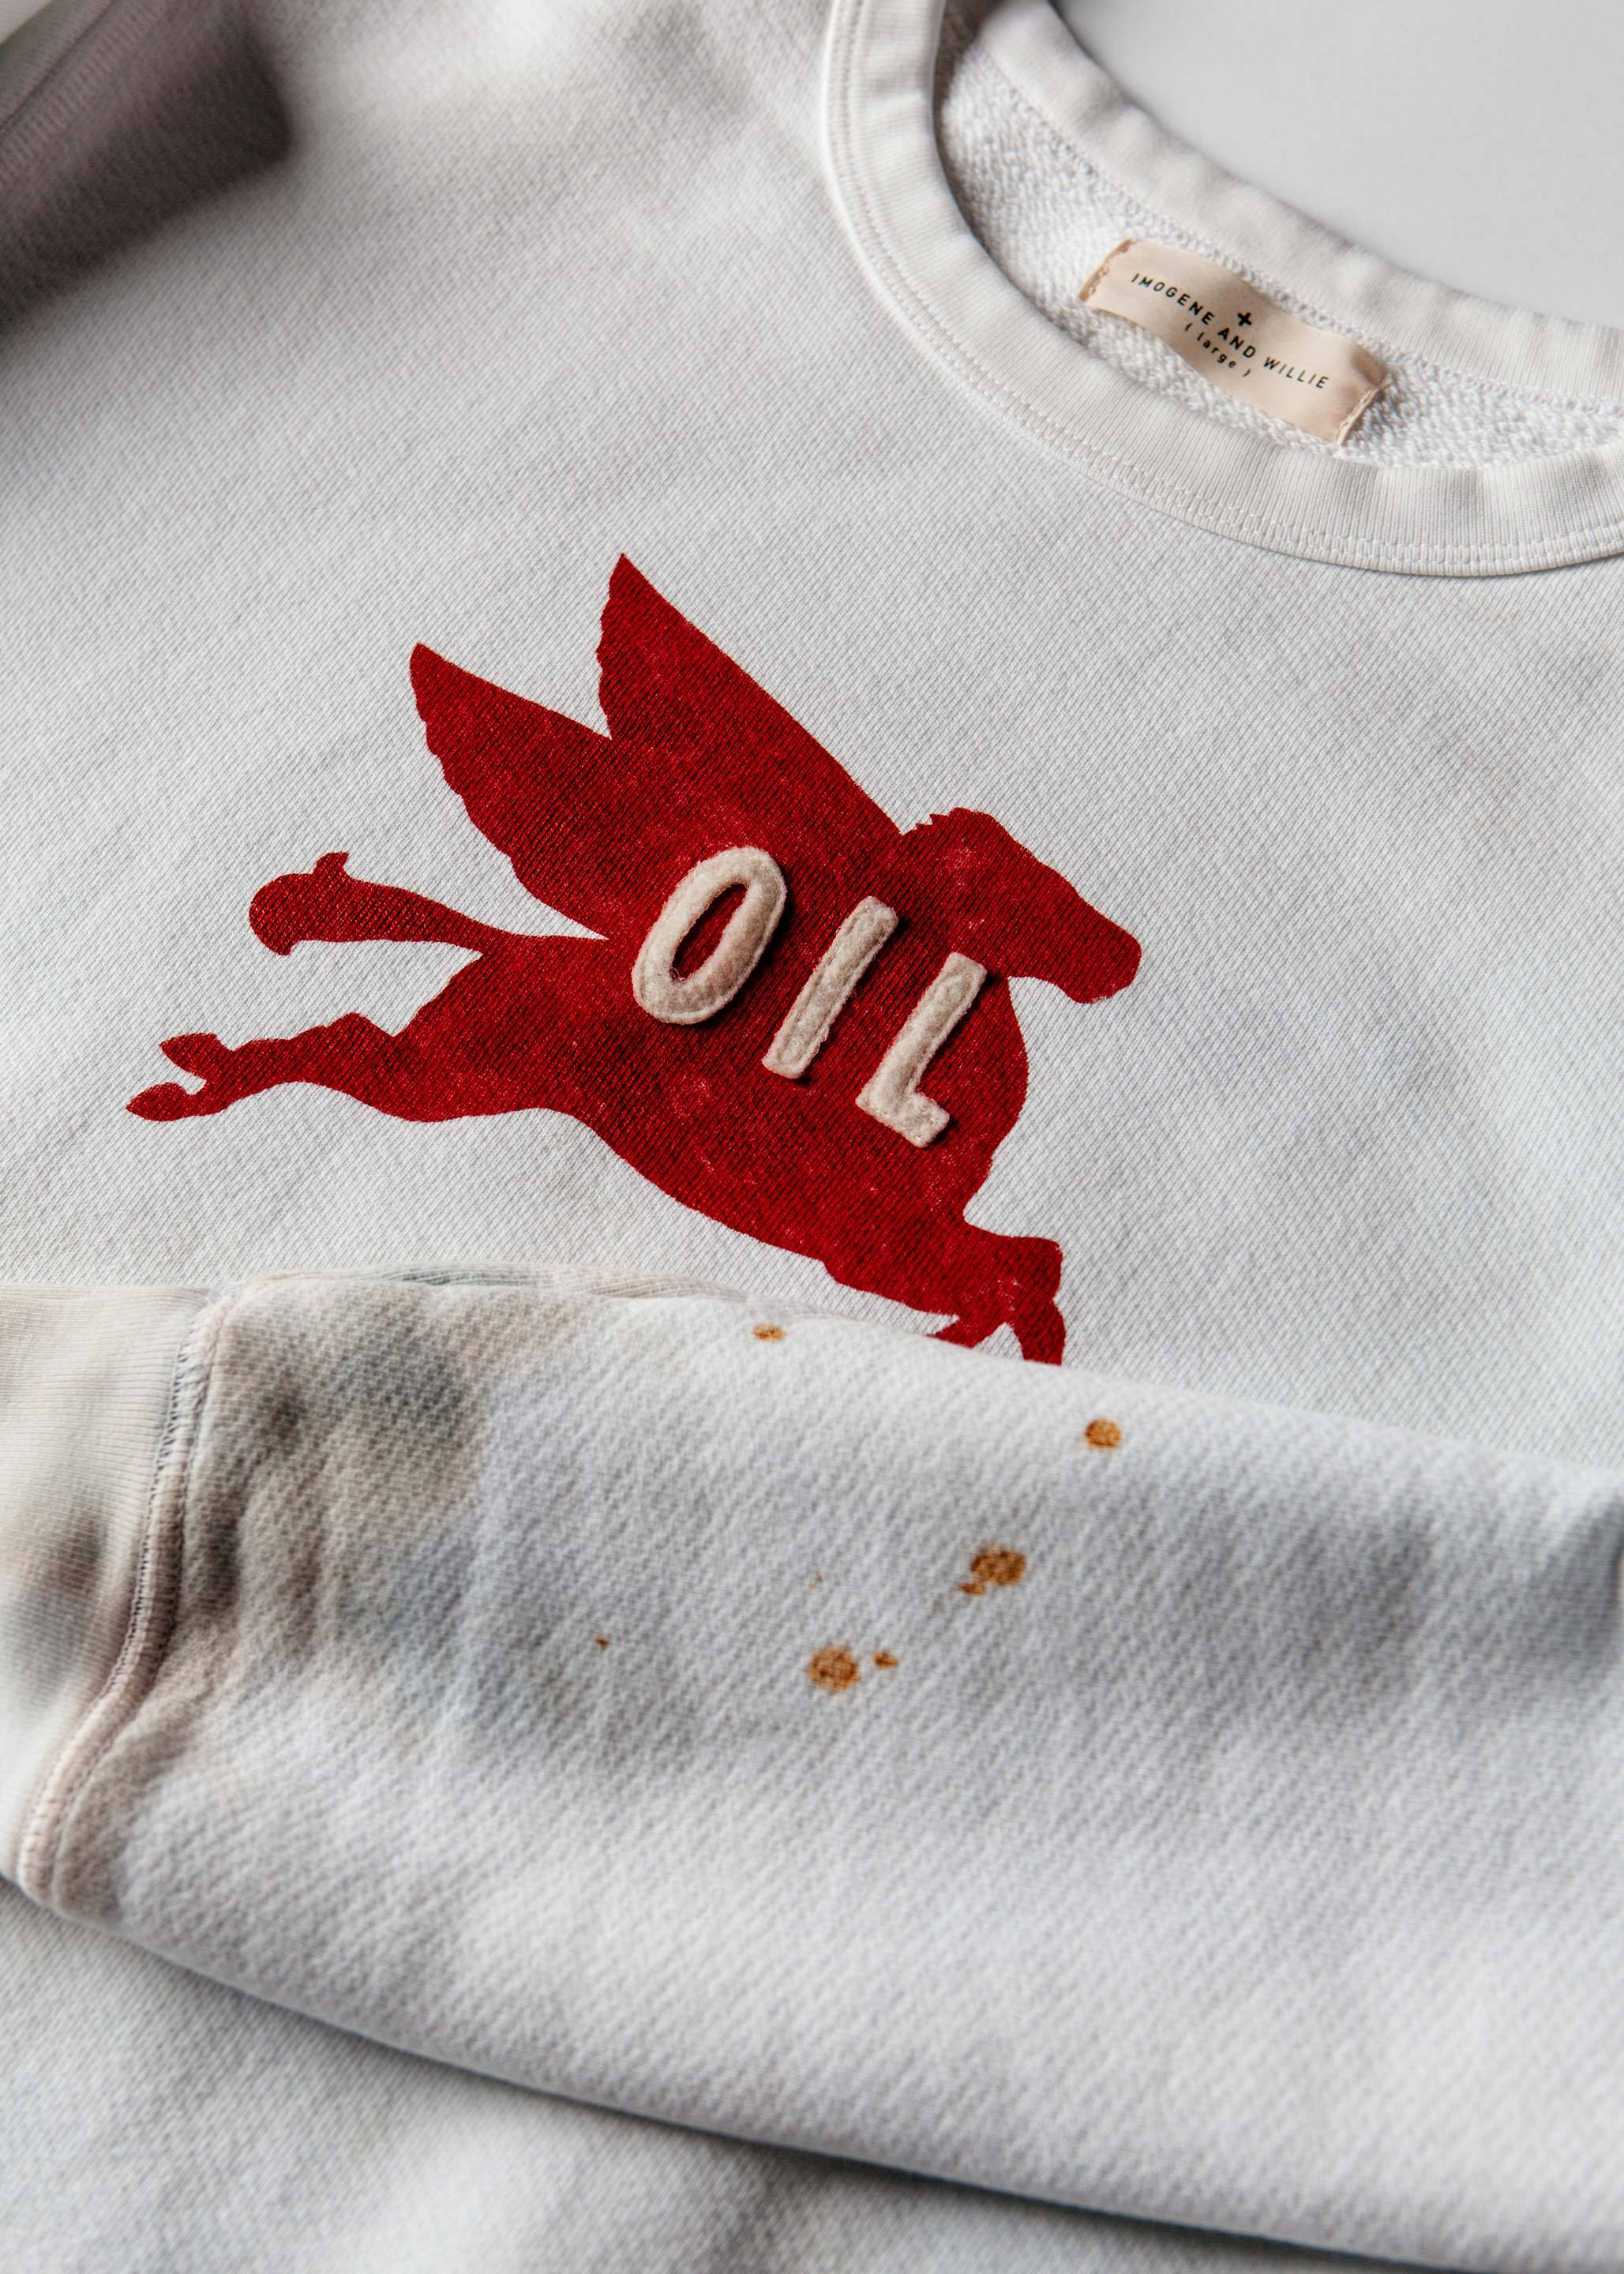 "imogene + willie - made to order stitched ""pegasus"" sweatshirt"